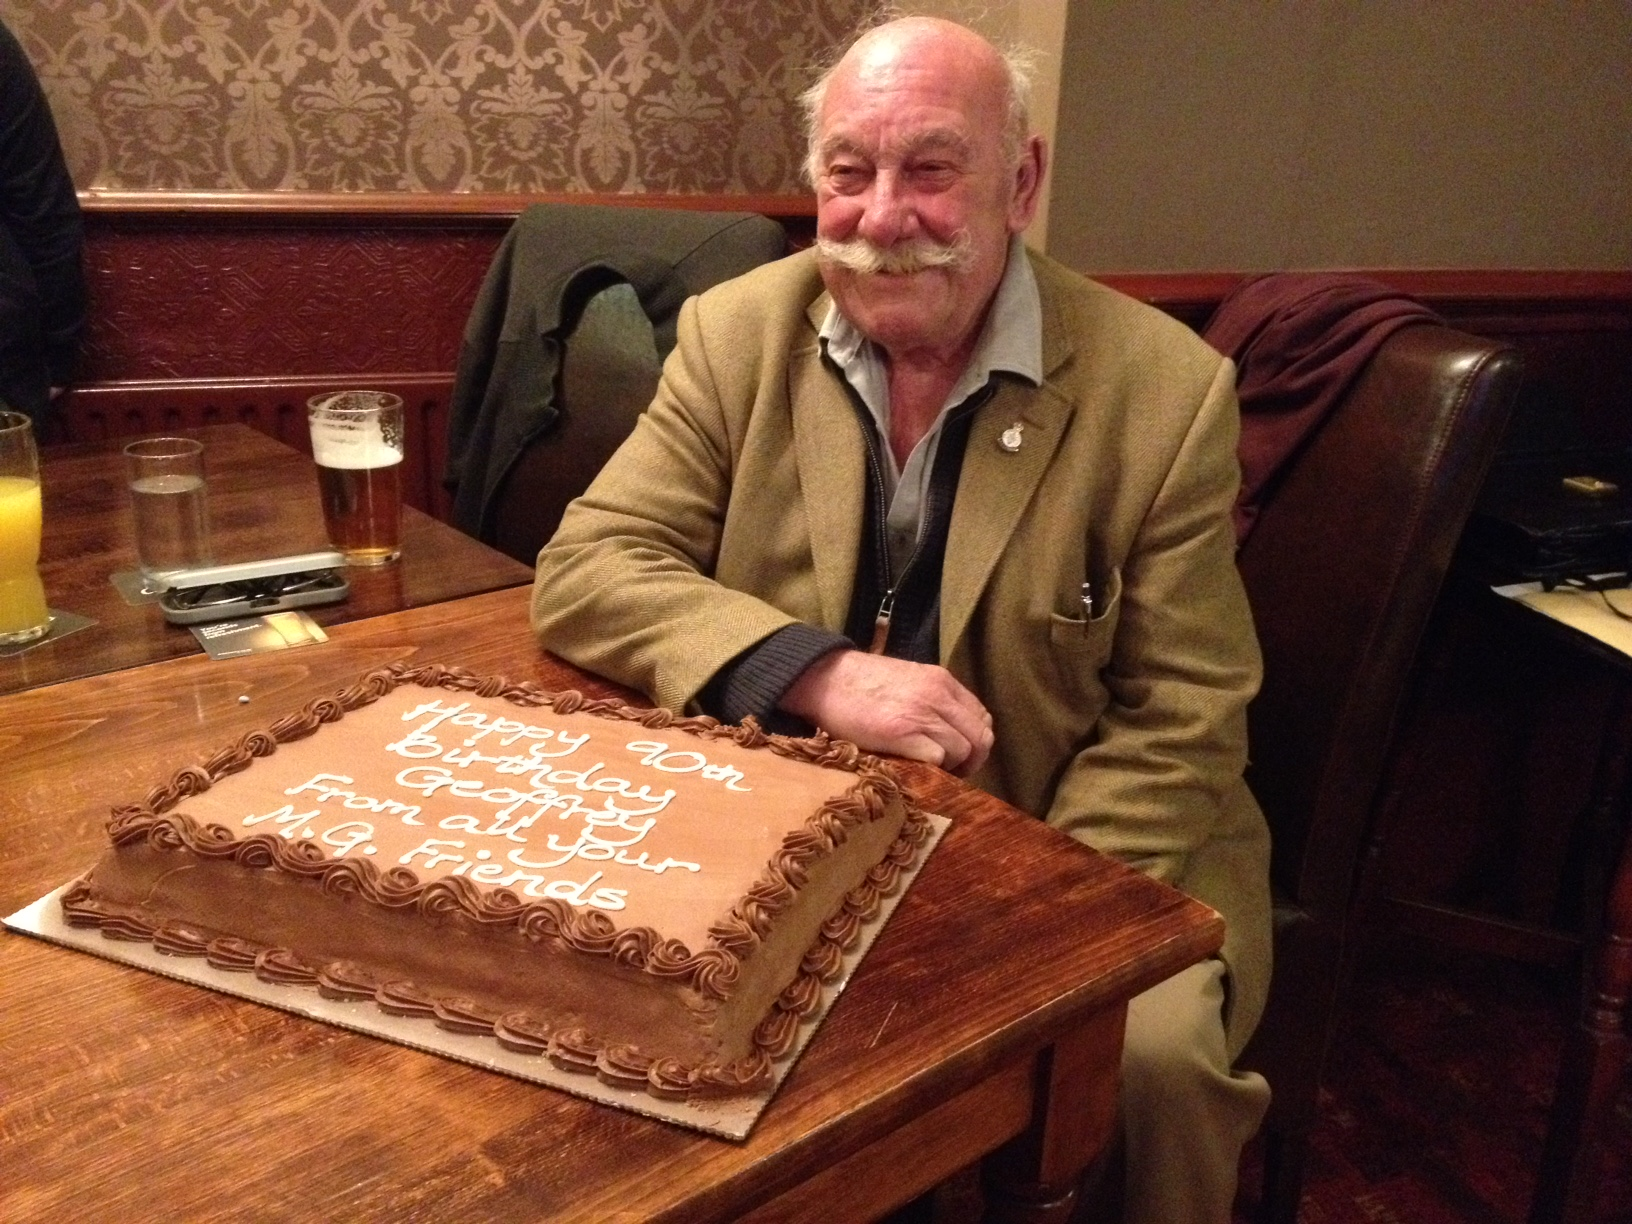 Geoffrey Wilson & 90th Birthday Cake